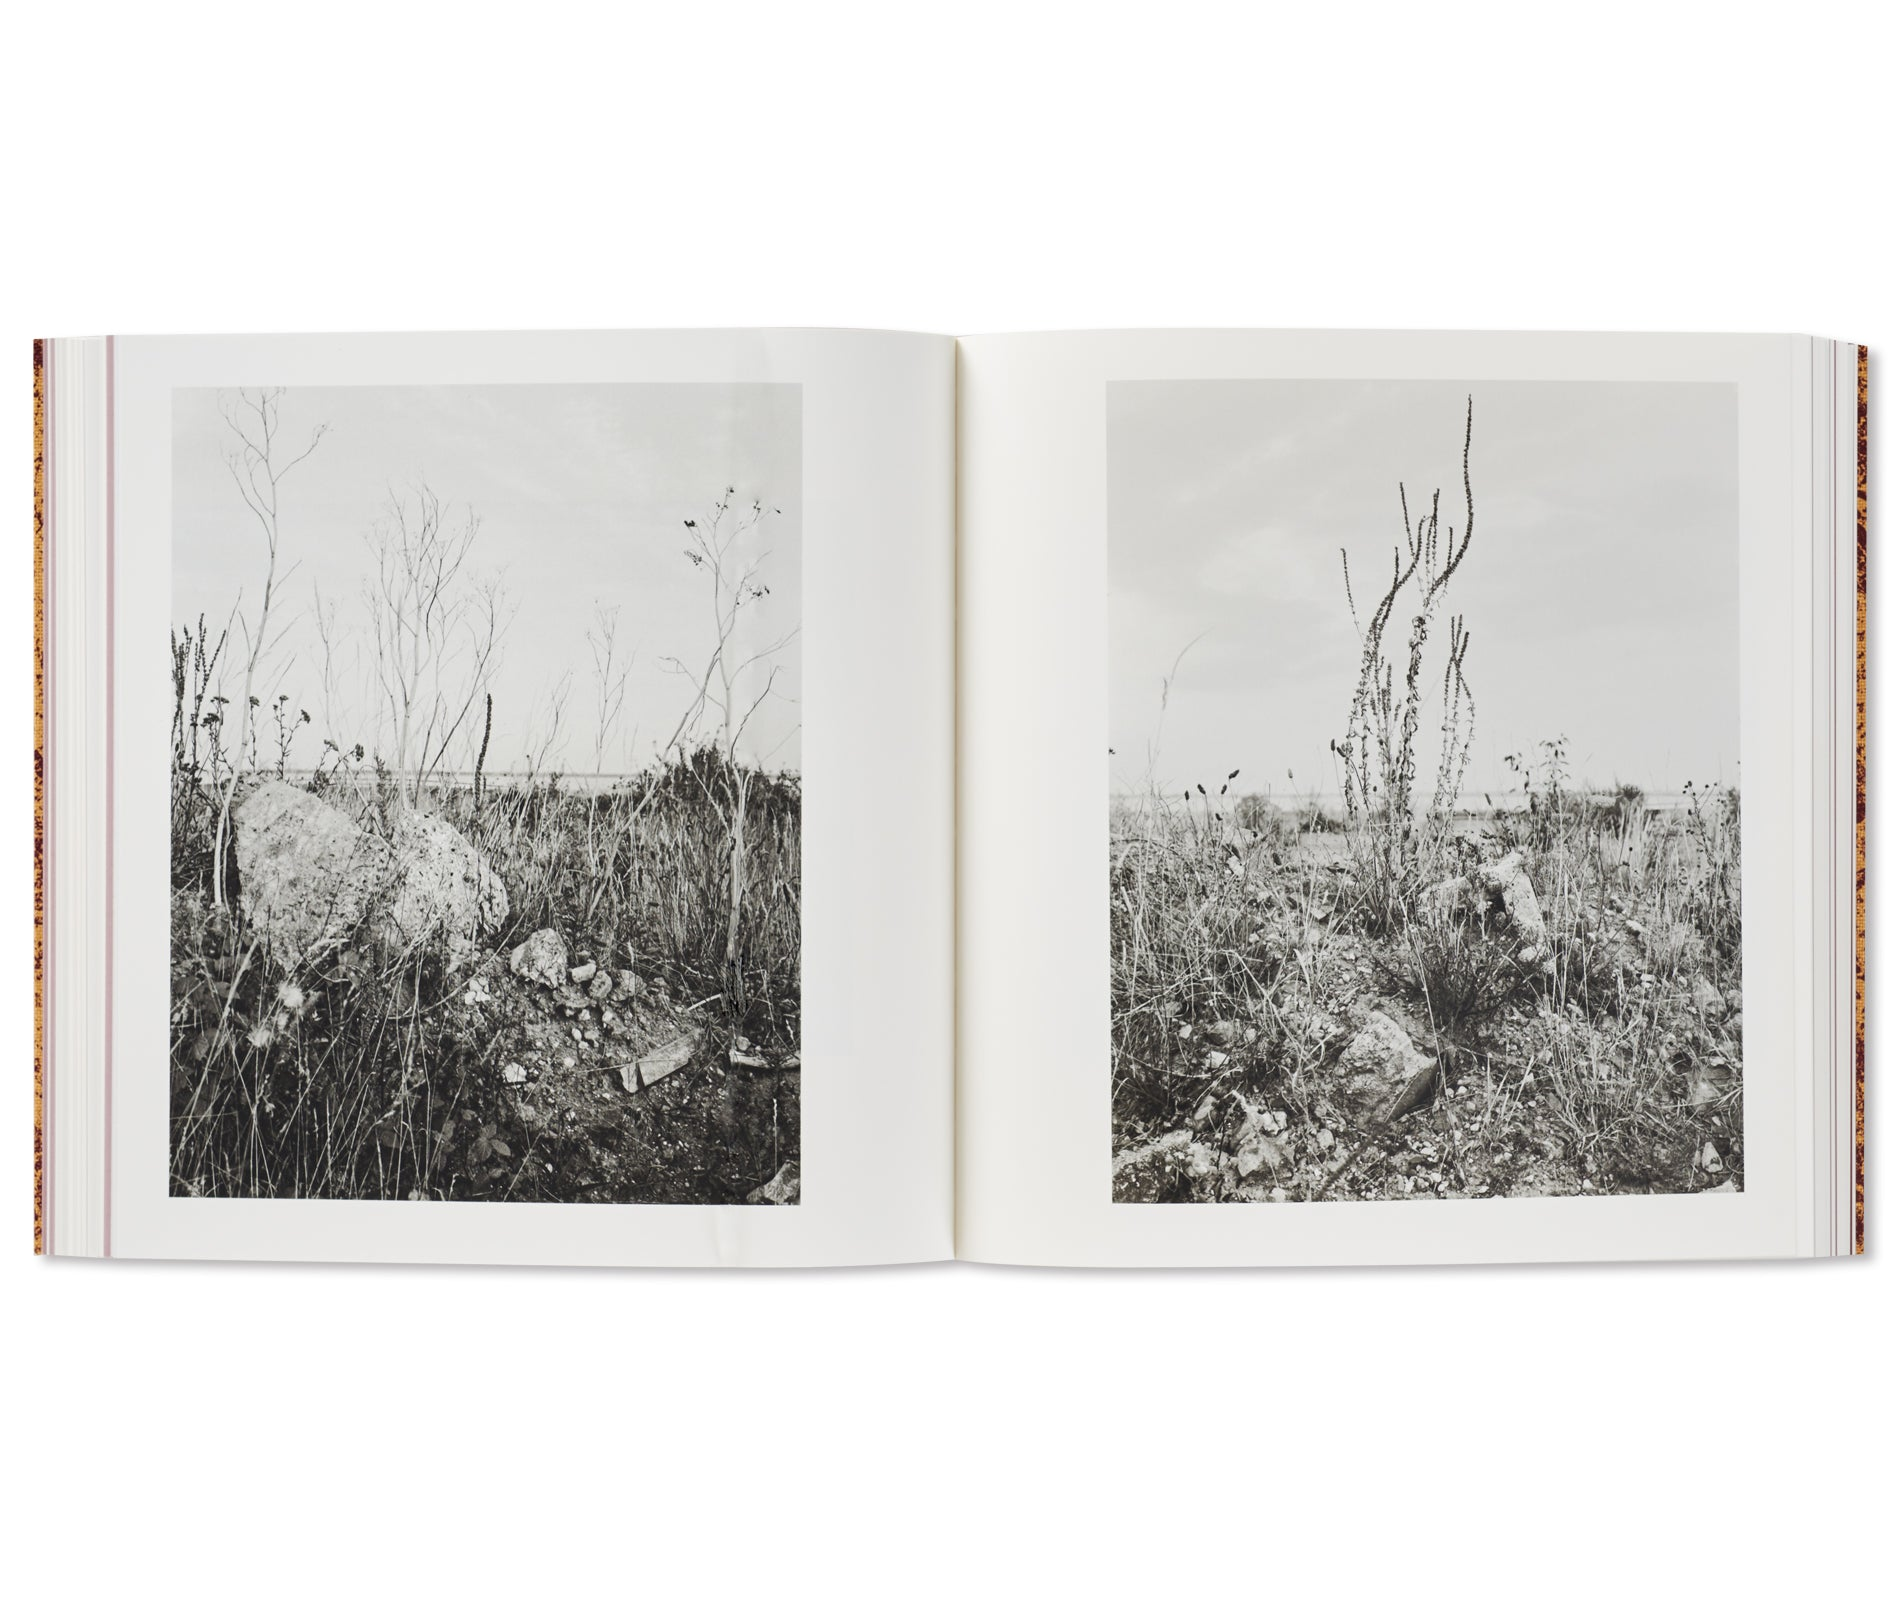 AND TIME FOLDS by Vanessa Winship [SIGNED]